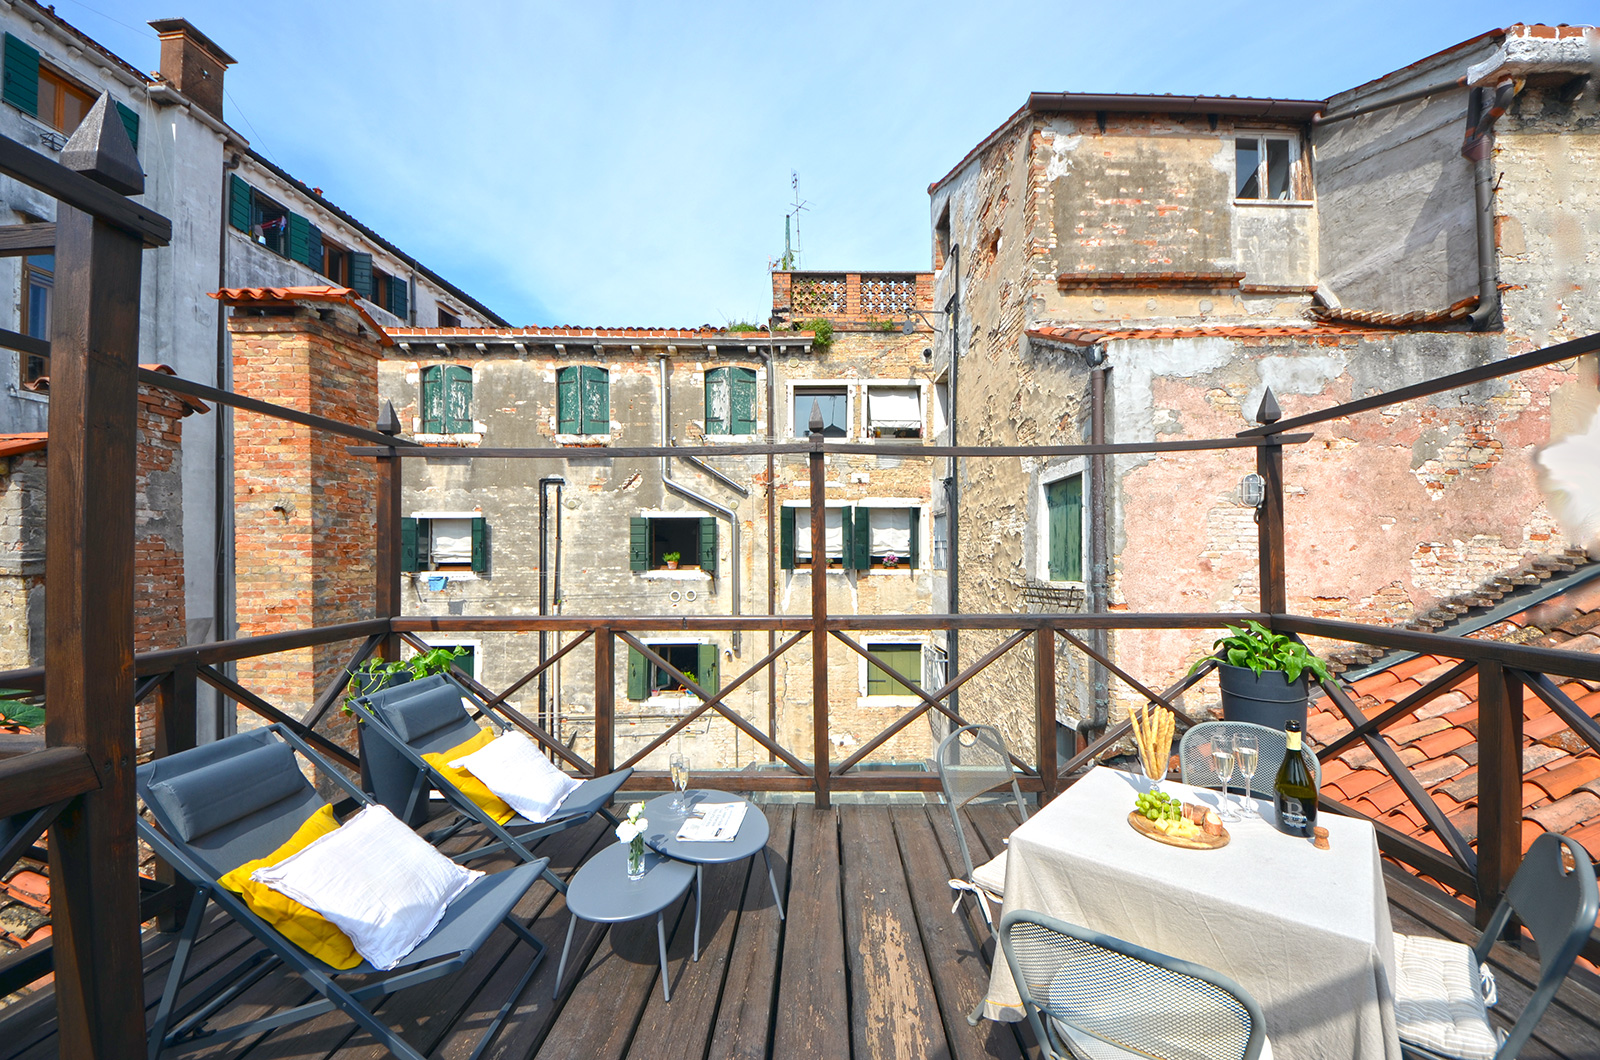 the terrace is very spacious and furnished with sun chairs and table